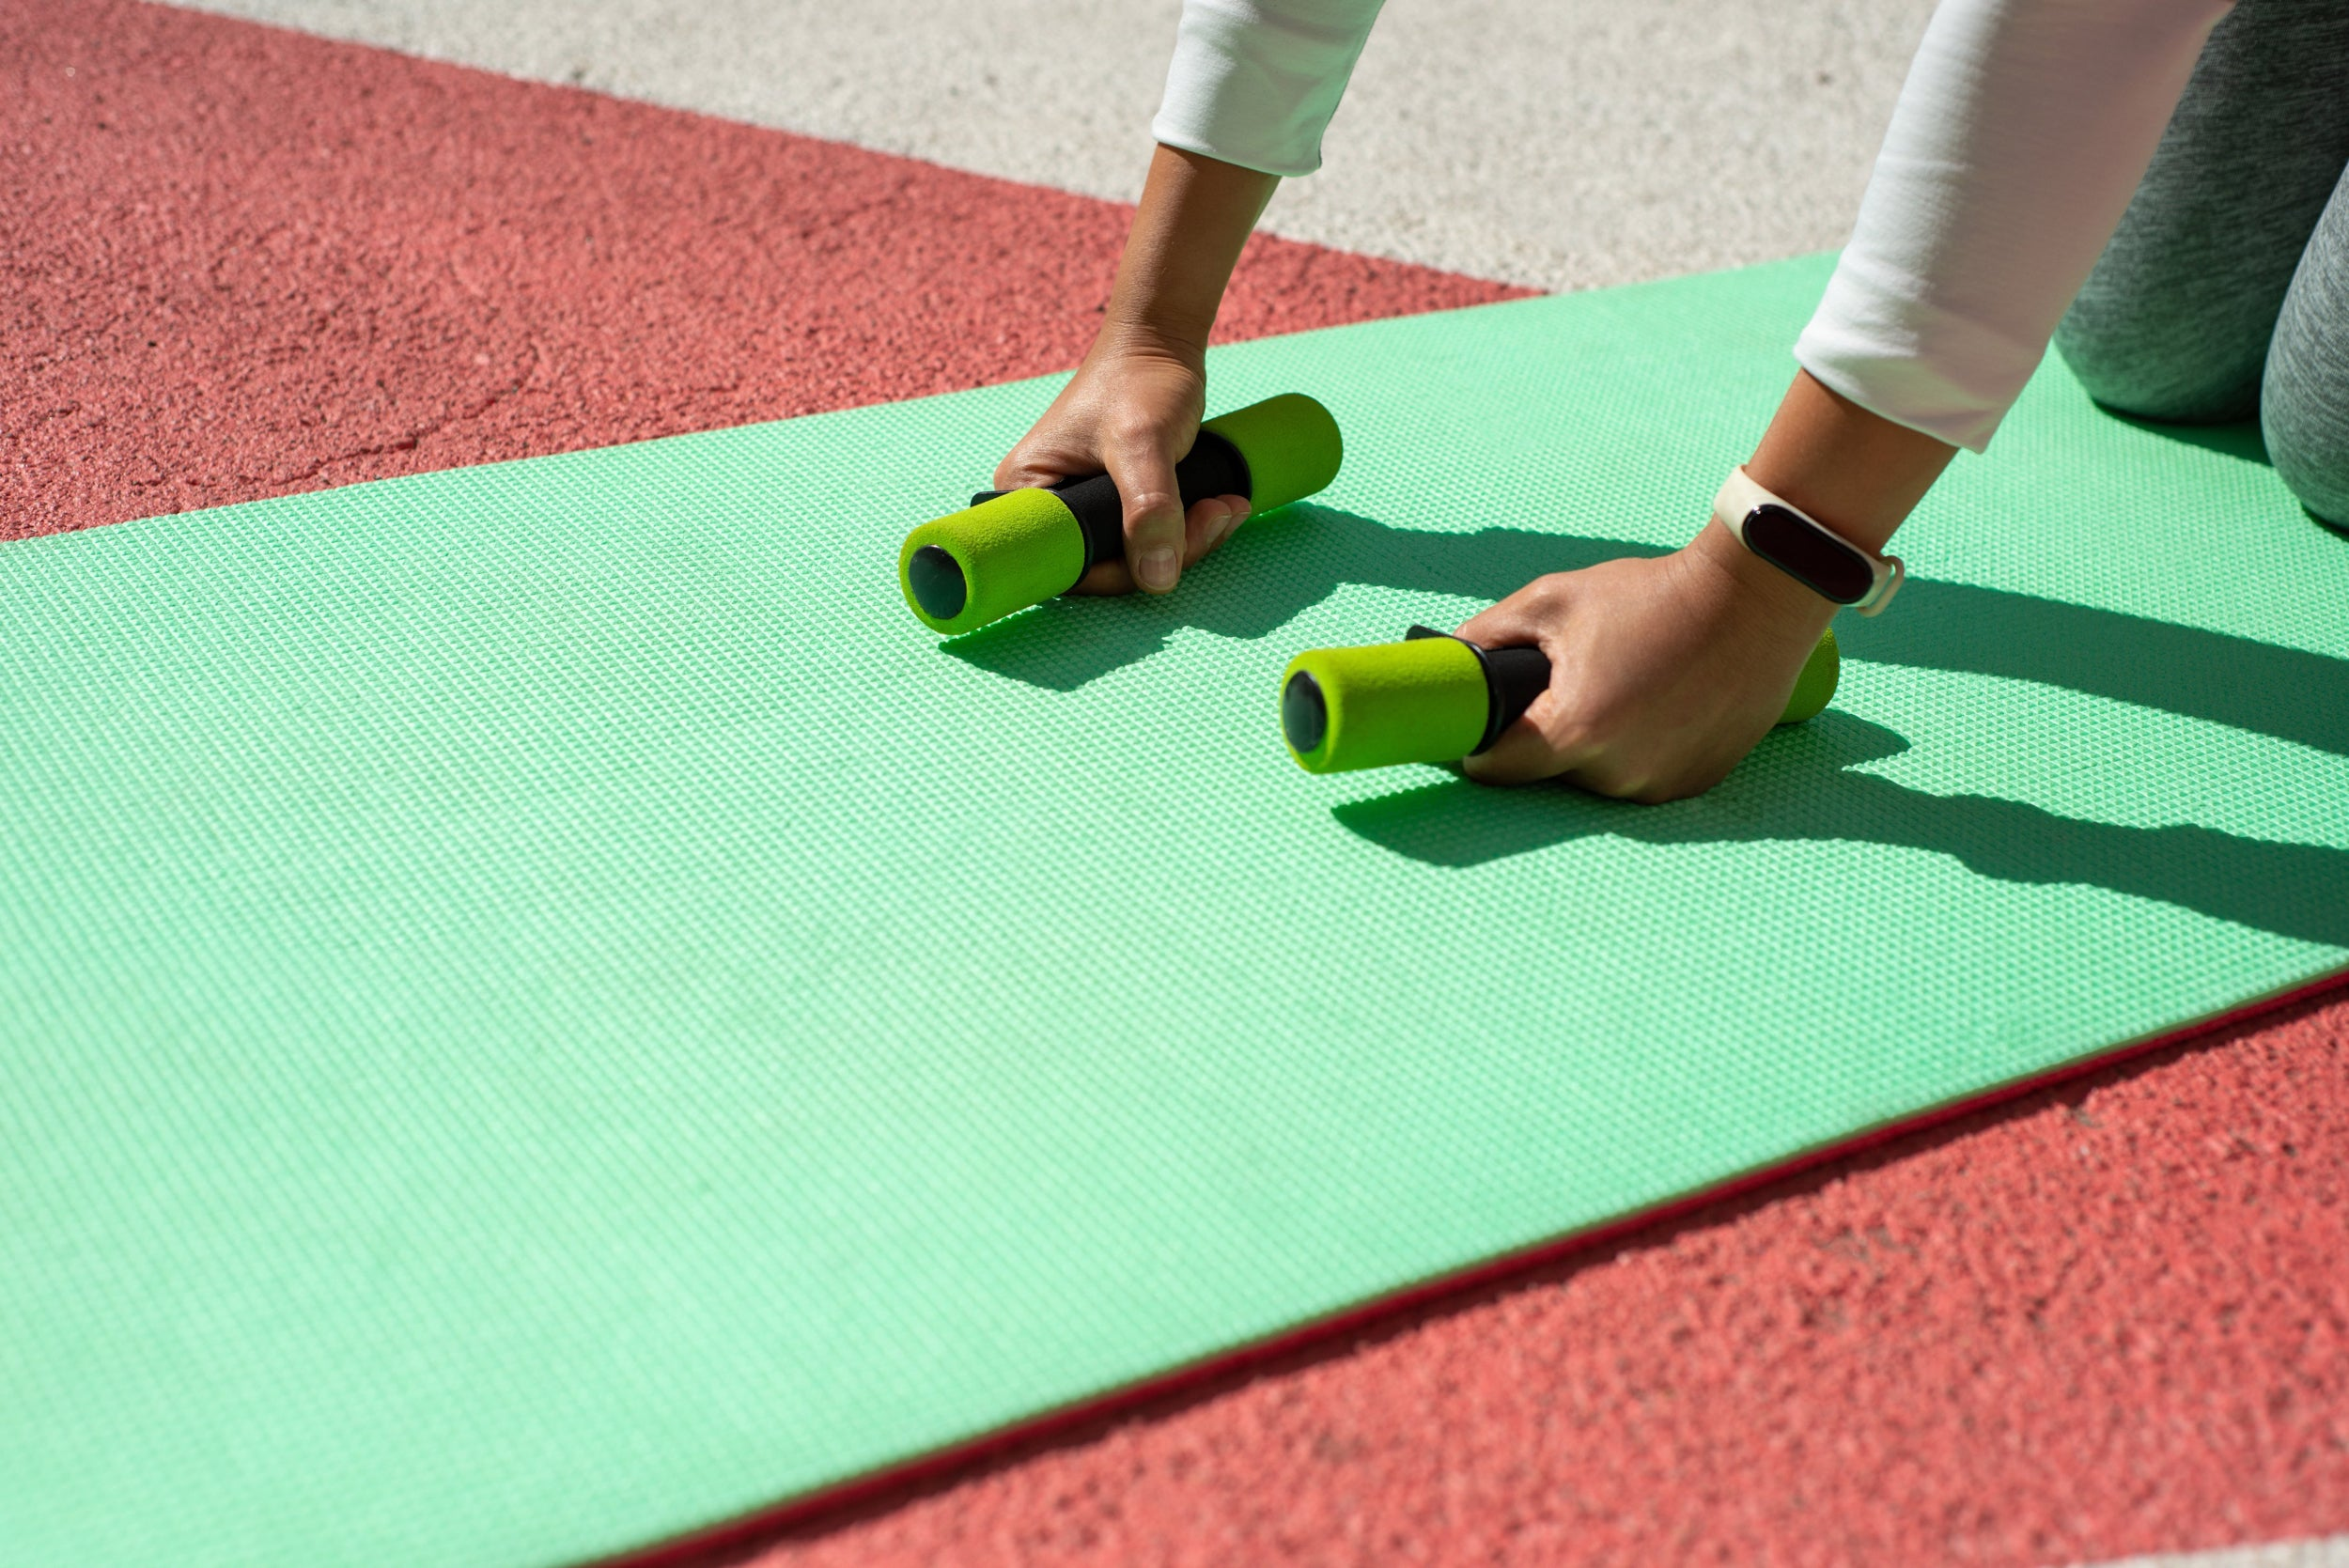 Two hands hold fitness weights on a green yoga mat